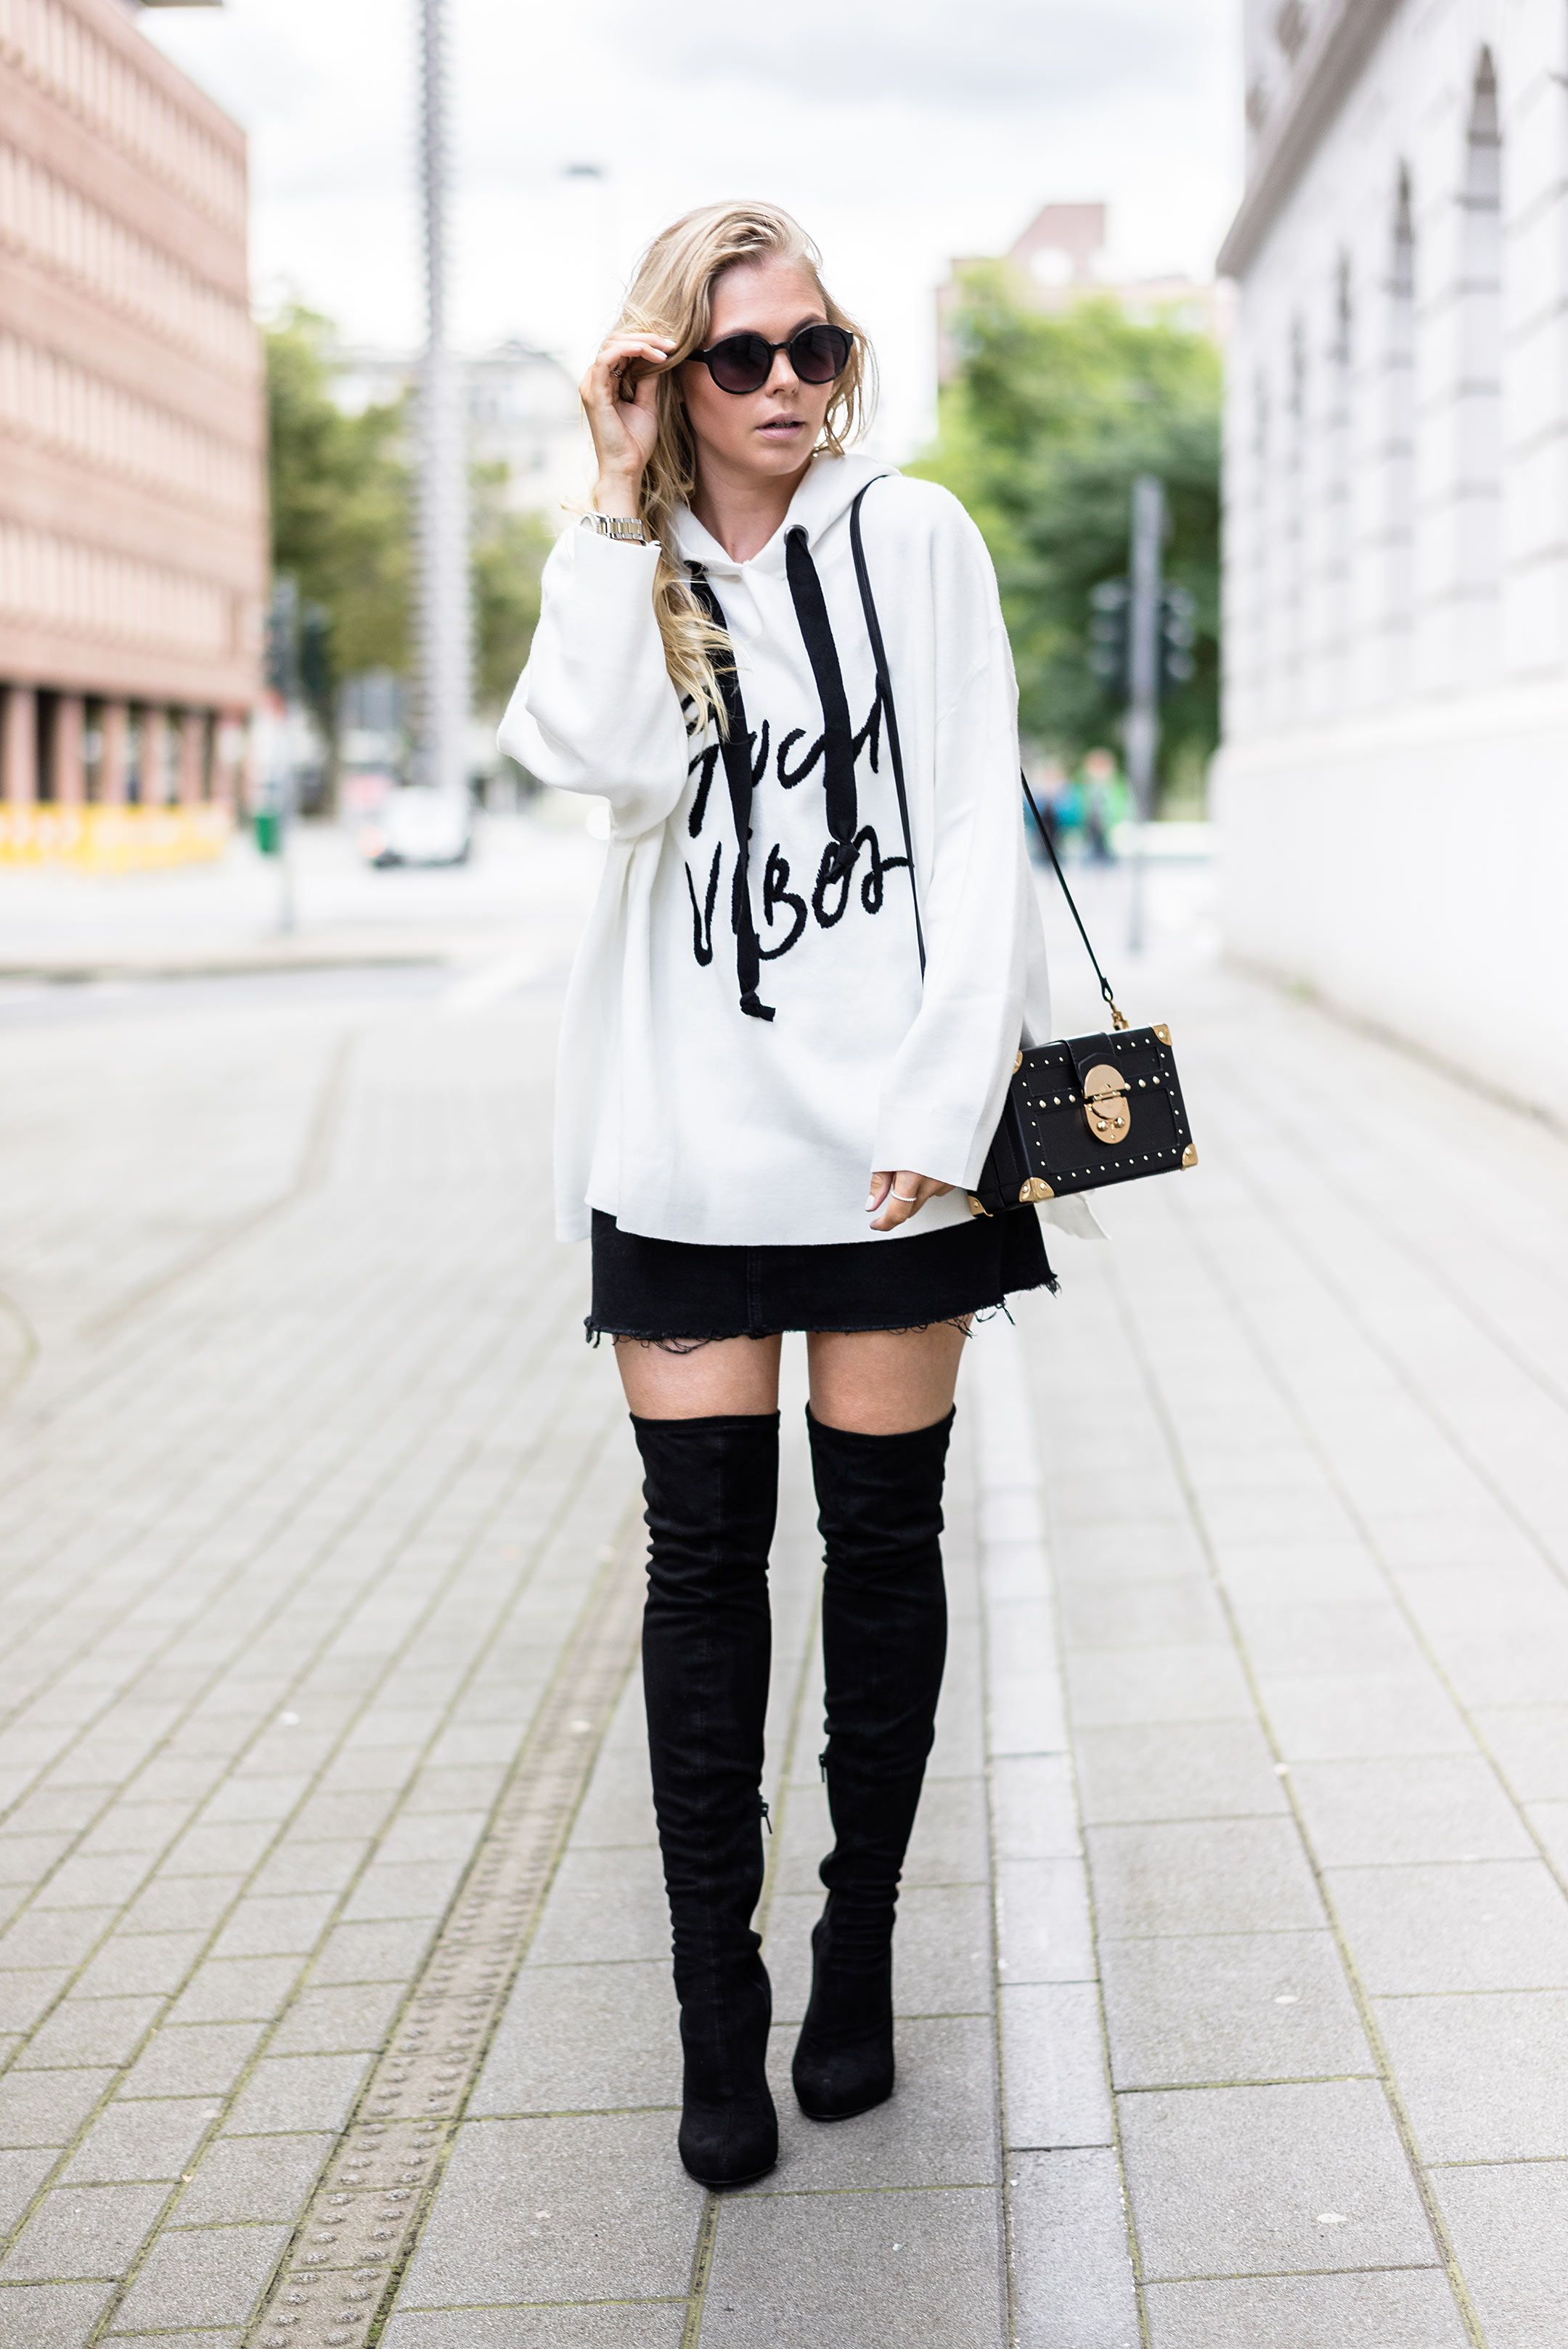 oversized sweater x overknees outfit overknees outfit outfit inspirationen und overknees. Black Bedroom Furniture Sets. Home Design Ideas